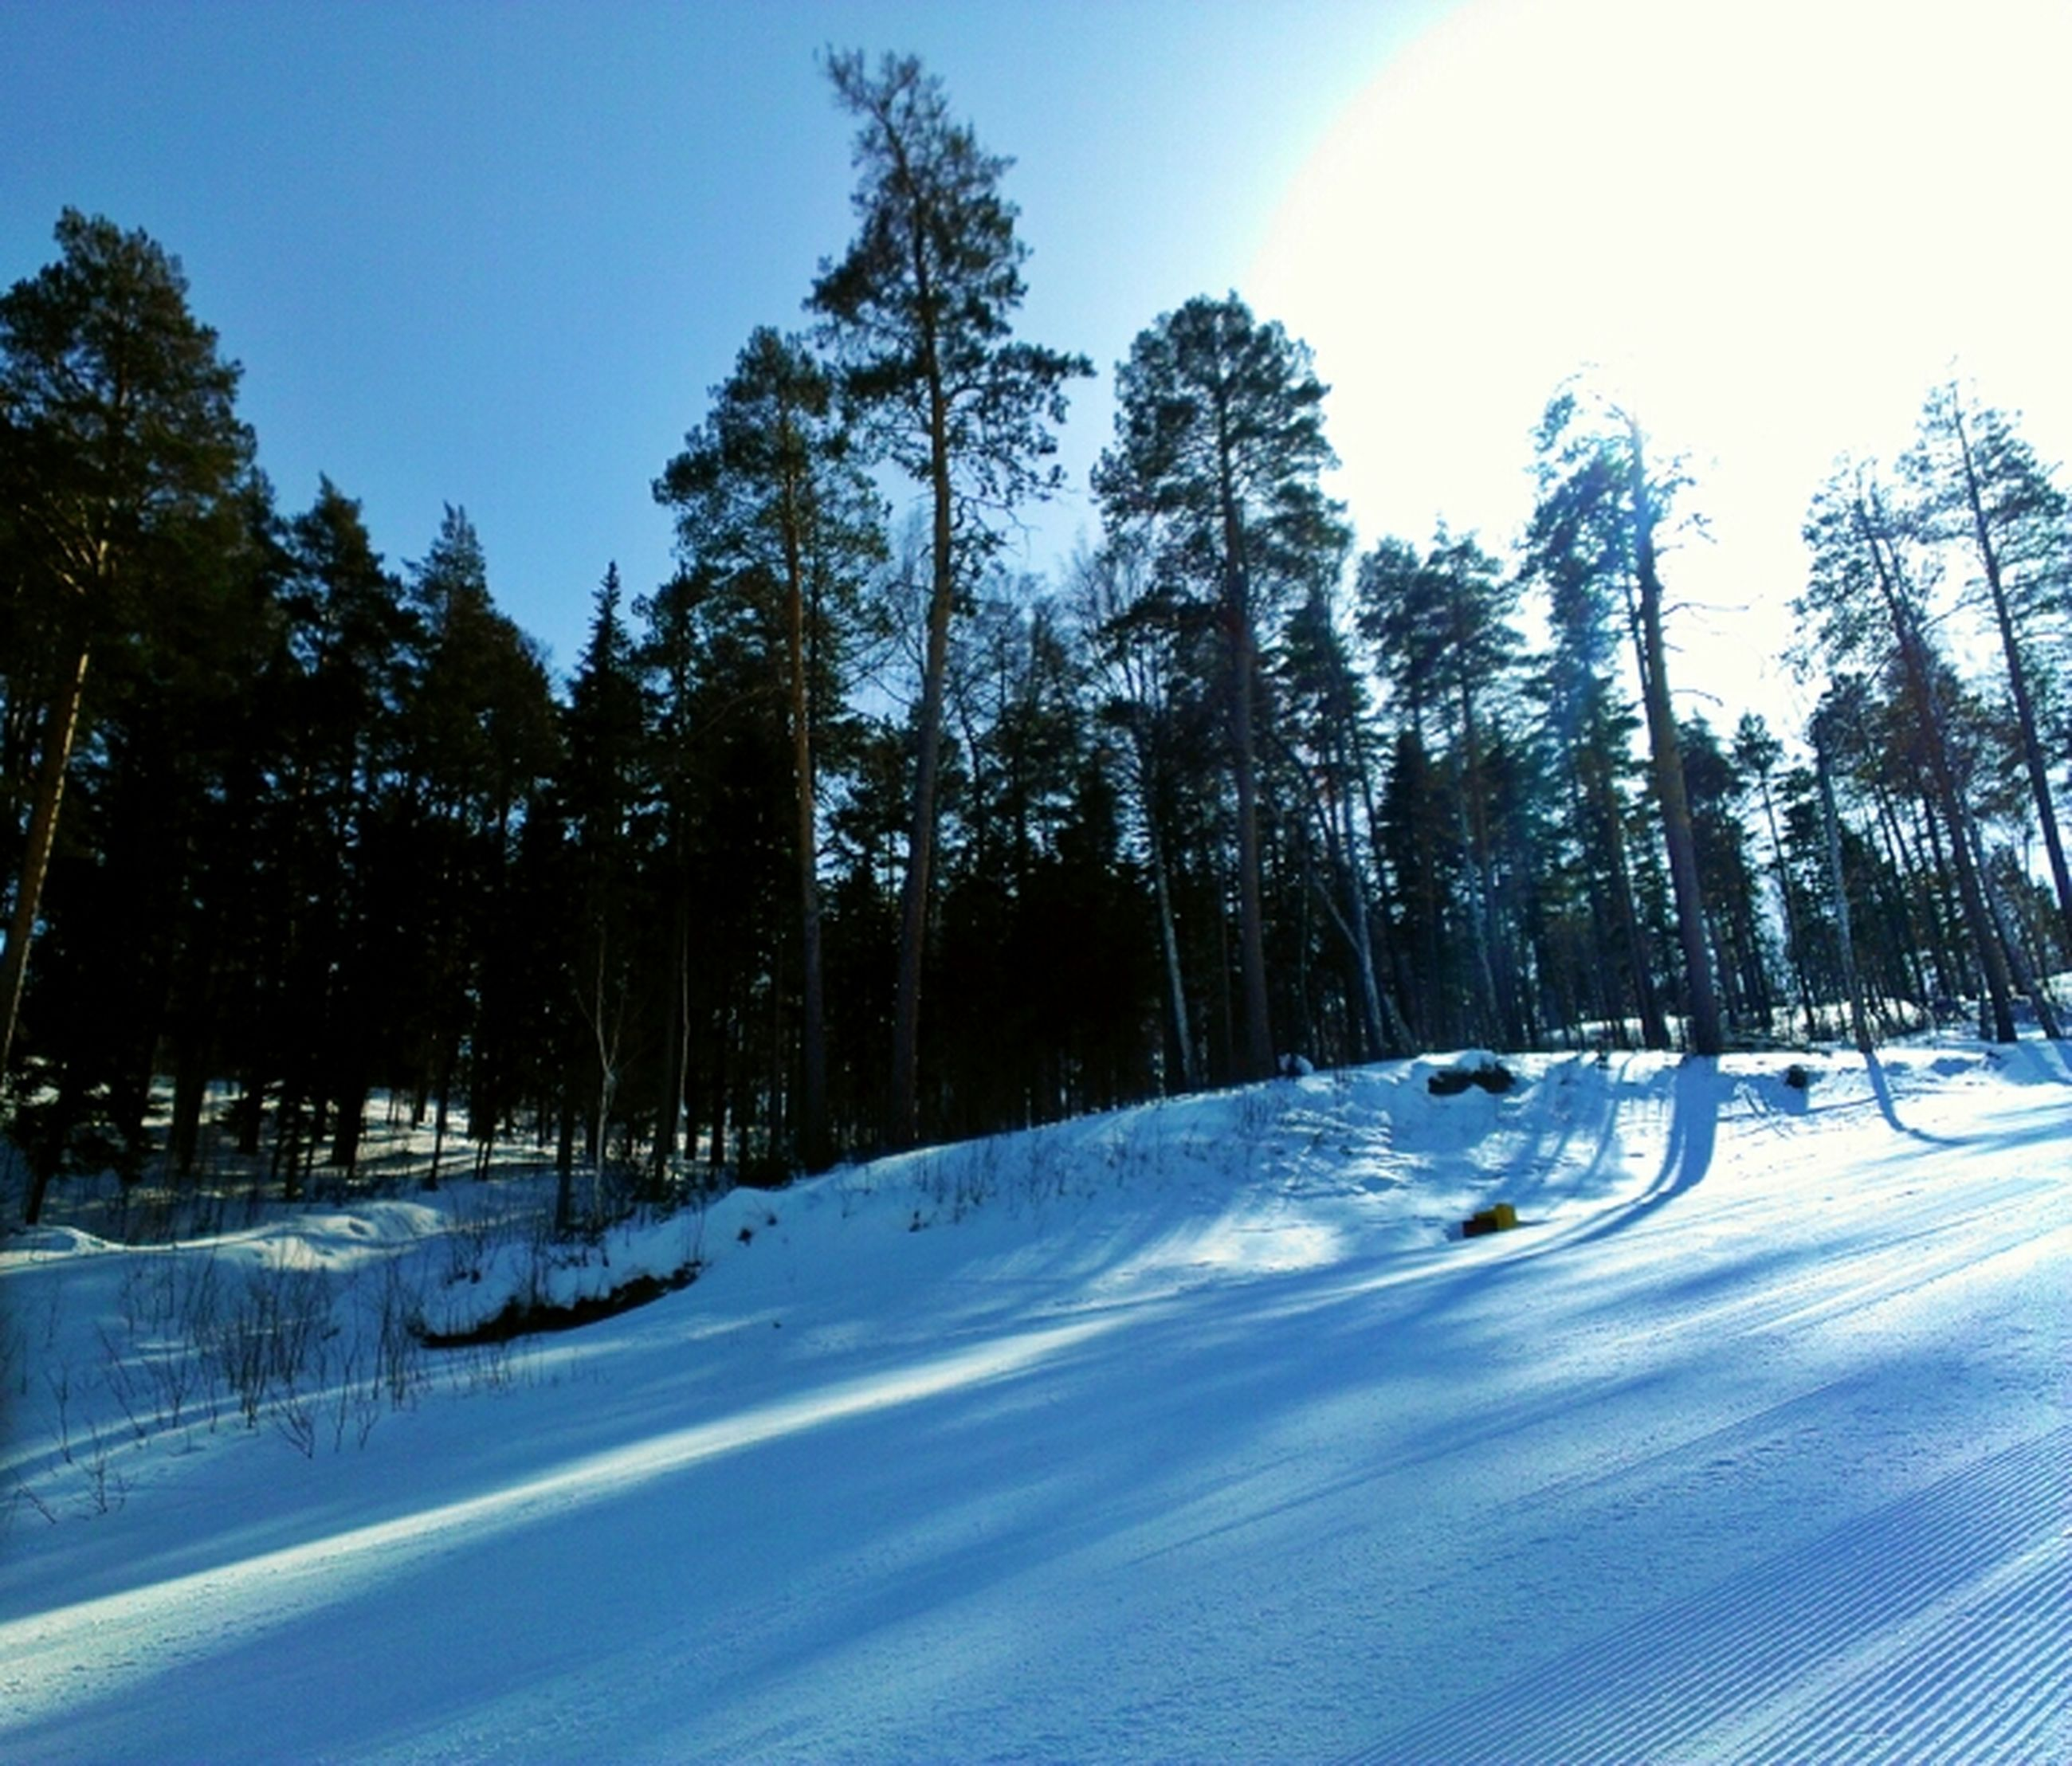 snow, cold temperature, winter, tree, season, tranquility, nature, blue, beauty in nature, tranquil scene, white color, sunlight, covering, road, weather, clear sky, frozen, scenics, sky, landscape